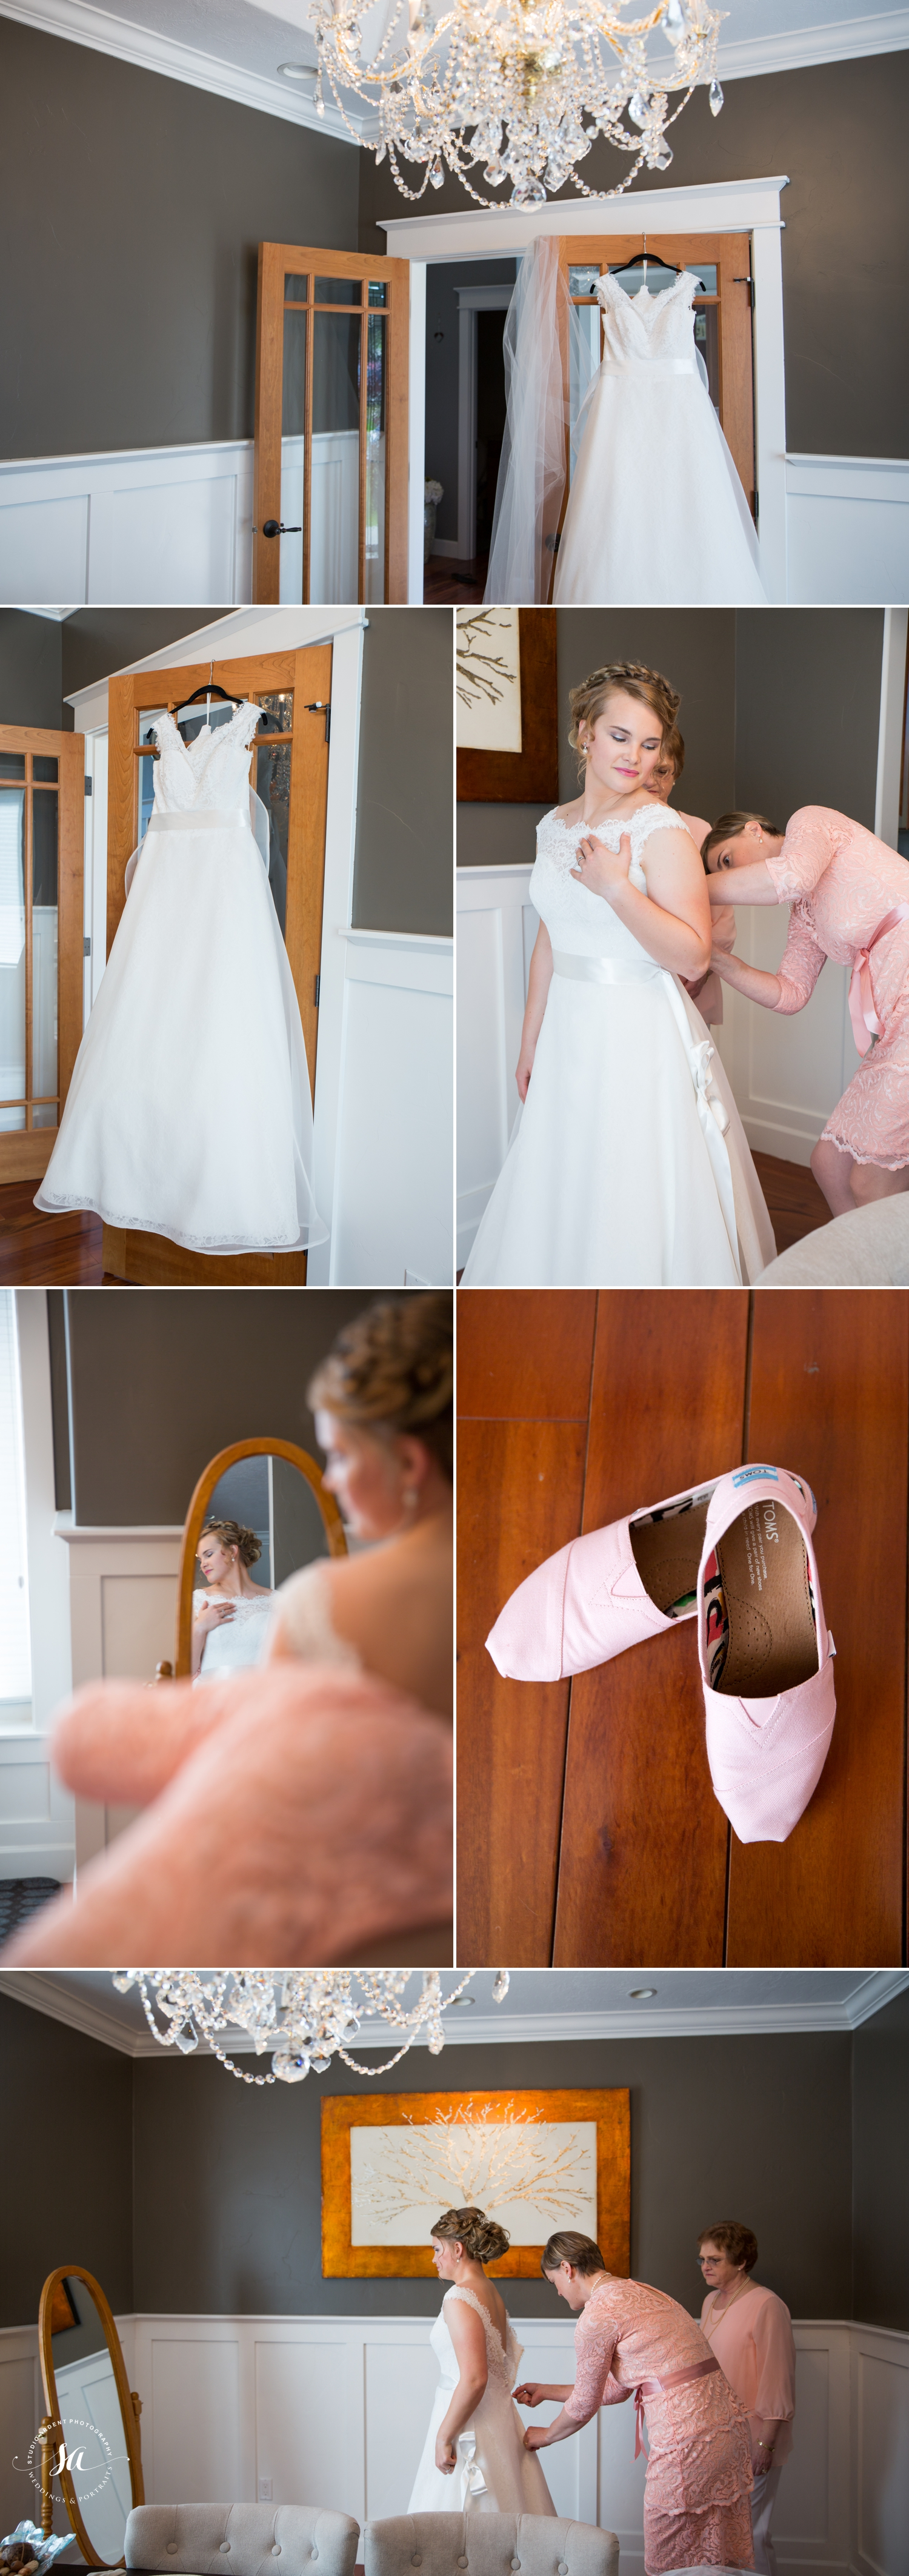 Love her pink Tom's for wedding shoes!